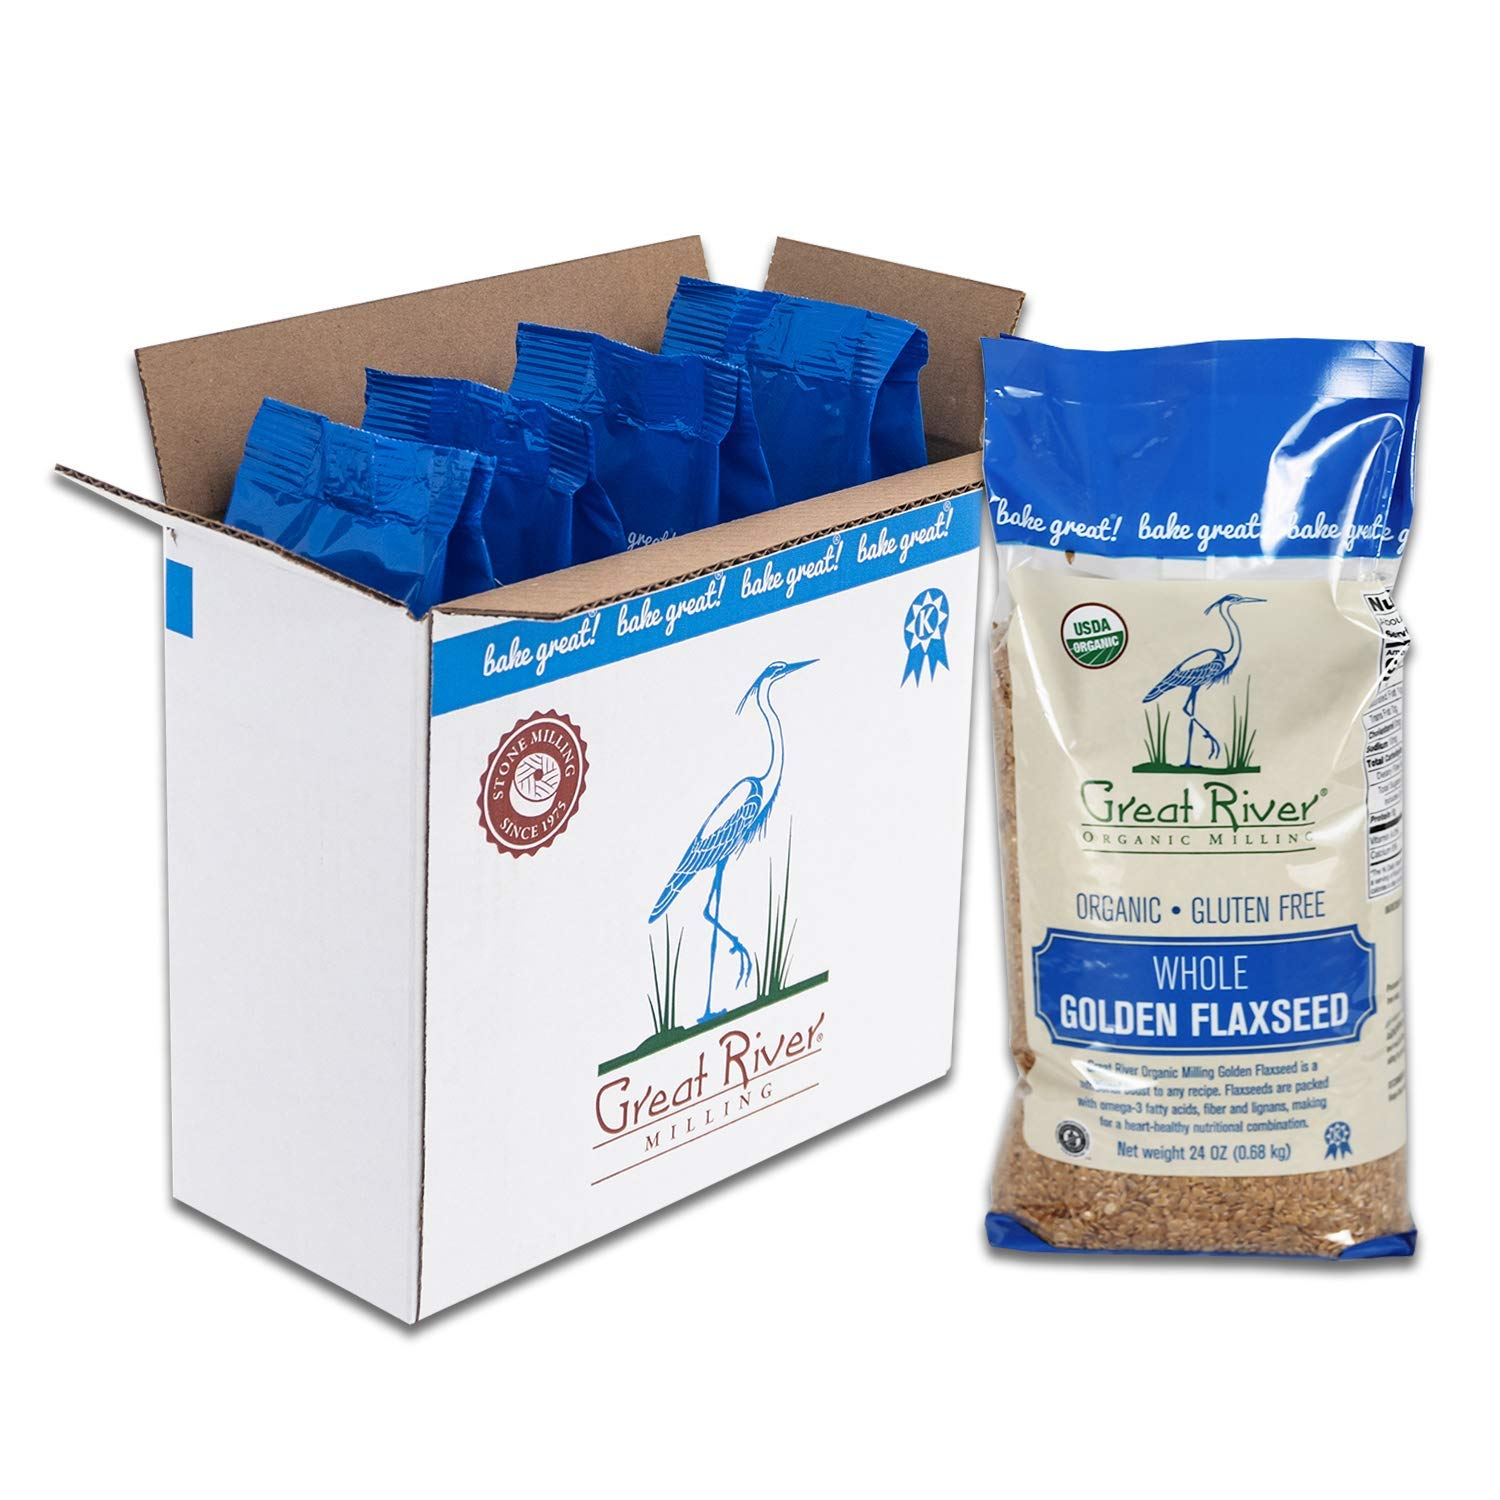 Great River Organic Milling, Whole Grain, Golden Flaxseed, Organic, Gluten Free, 24 Ounces (Pack of 4)